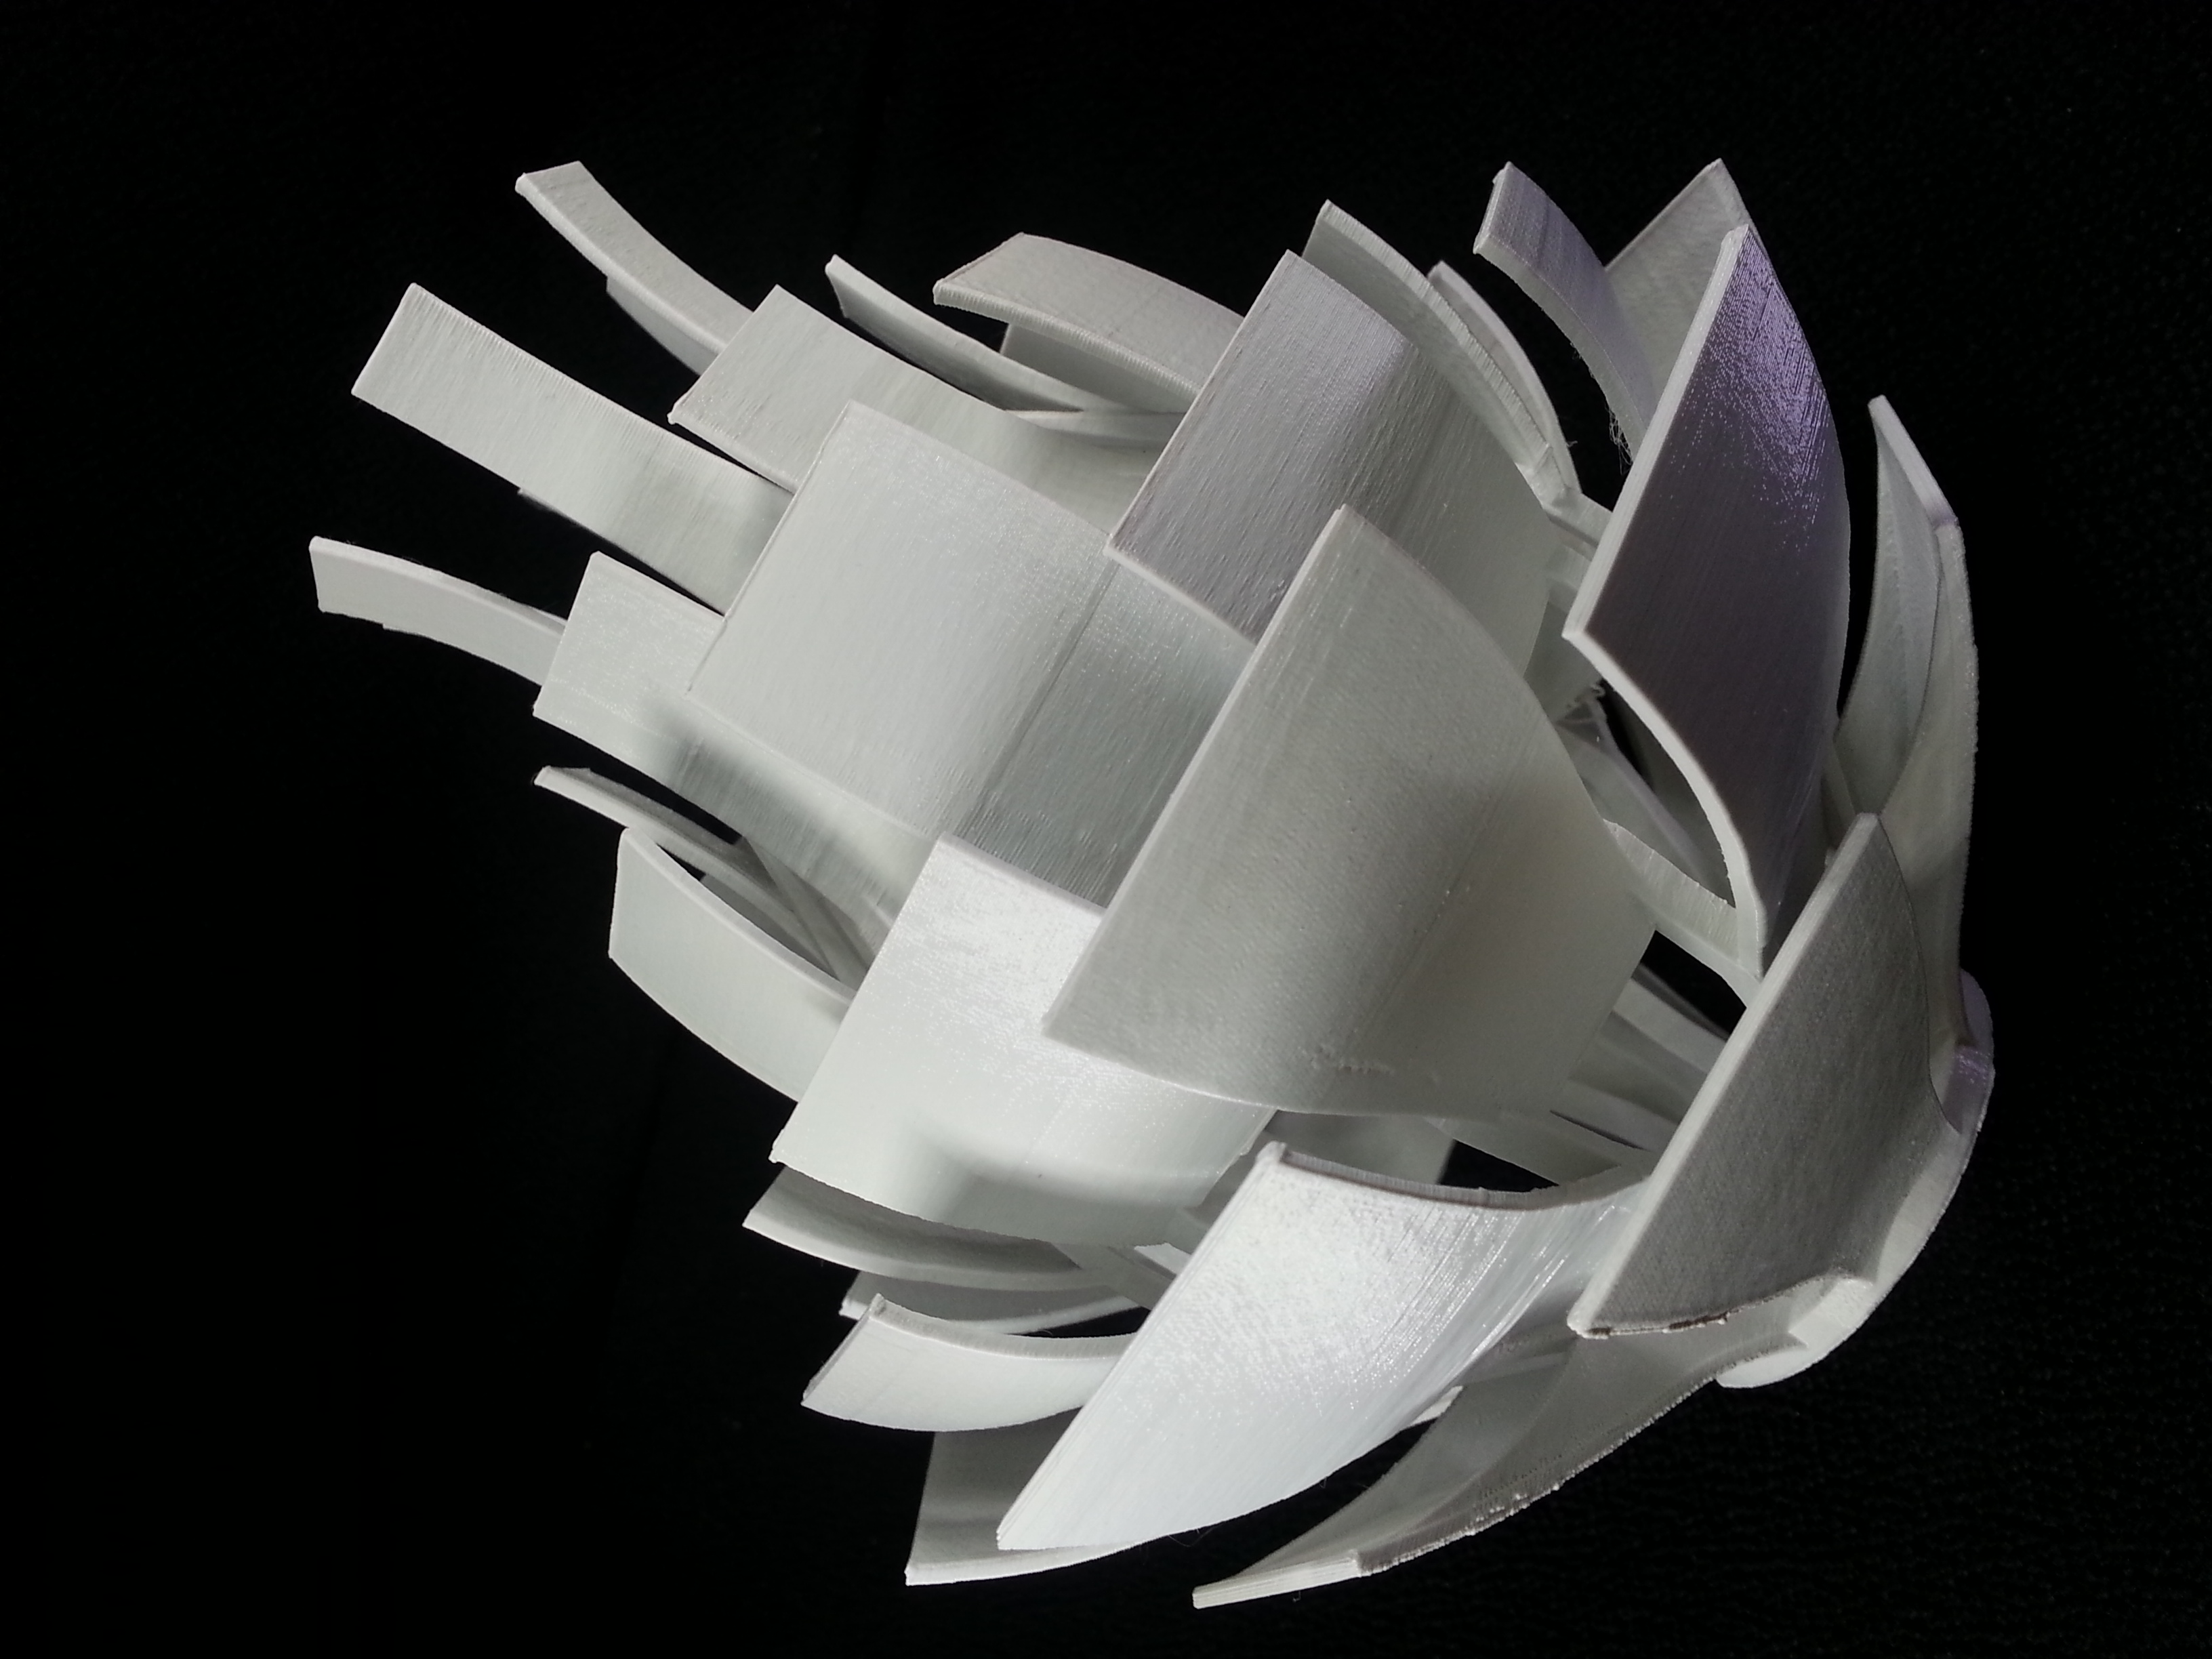 3d printable artichoke lamp shade by gcreate picture of print of artichoke lamp shade this print has been uploaded by peter song aloadofball Image collections